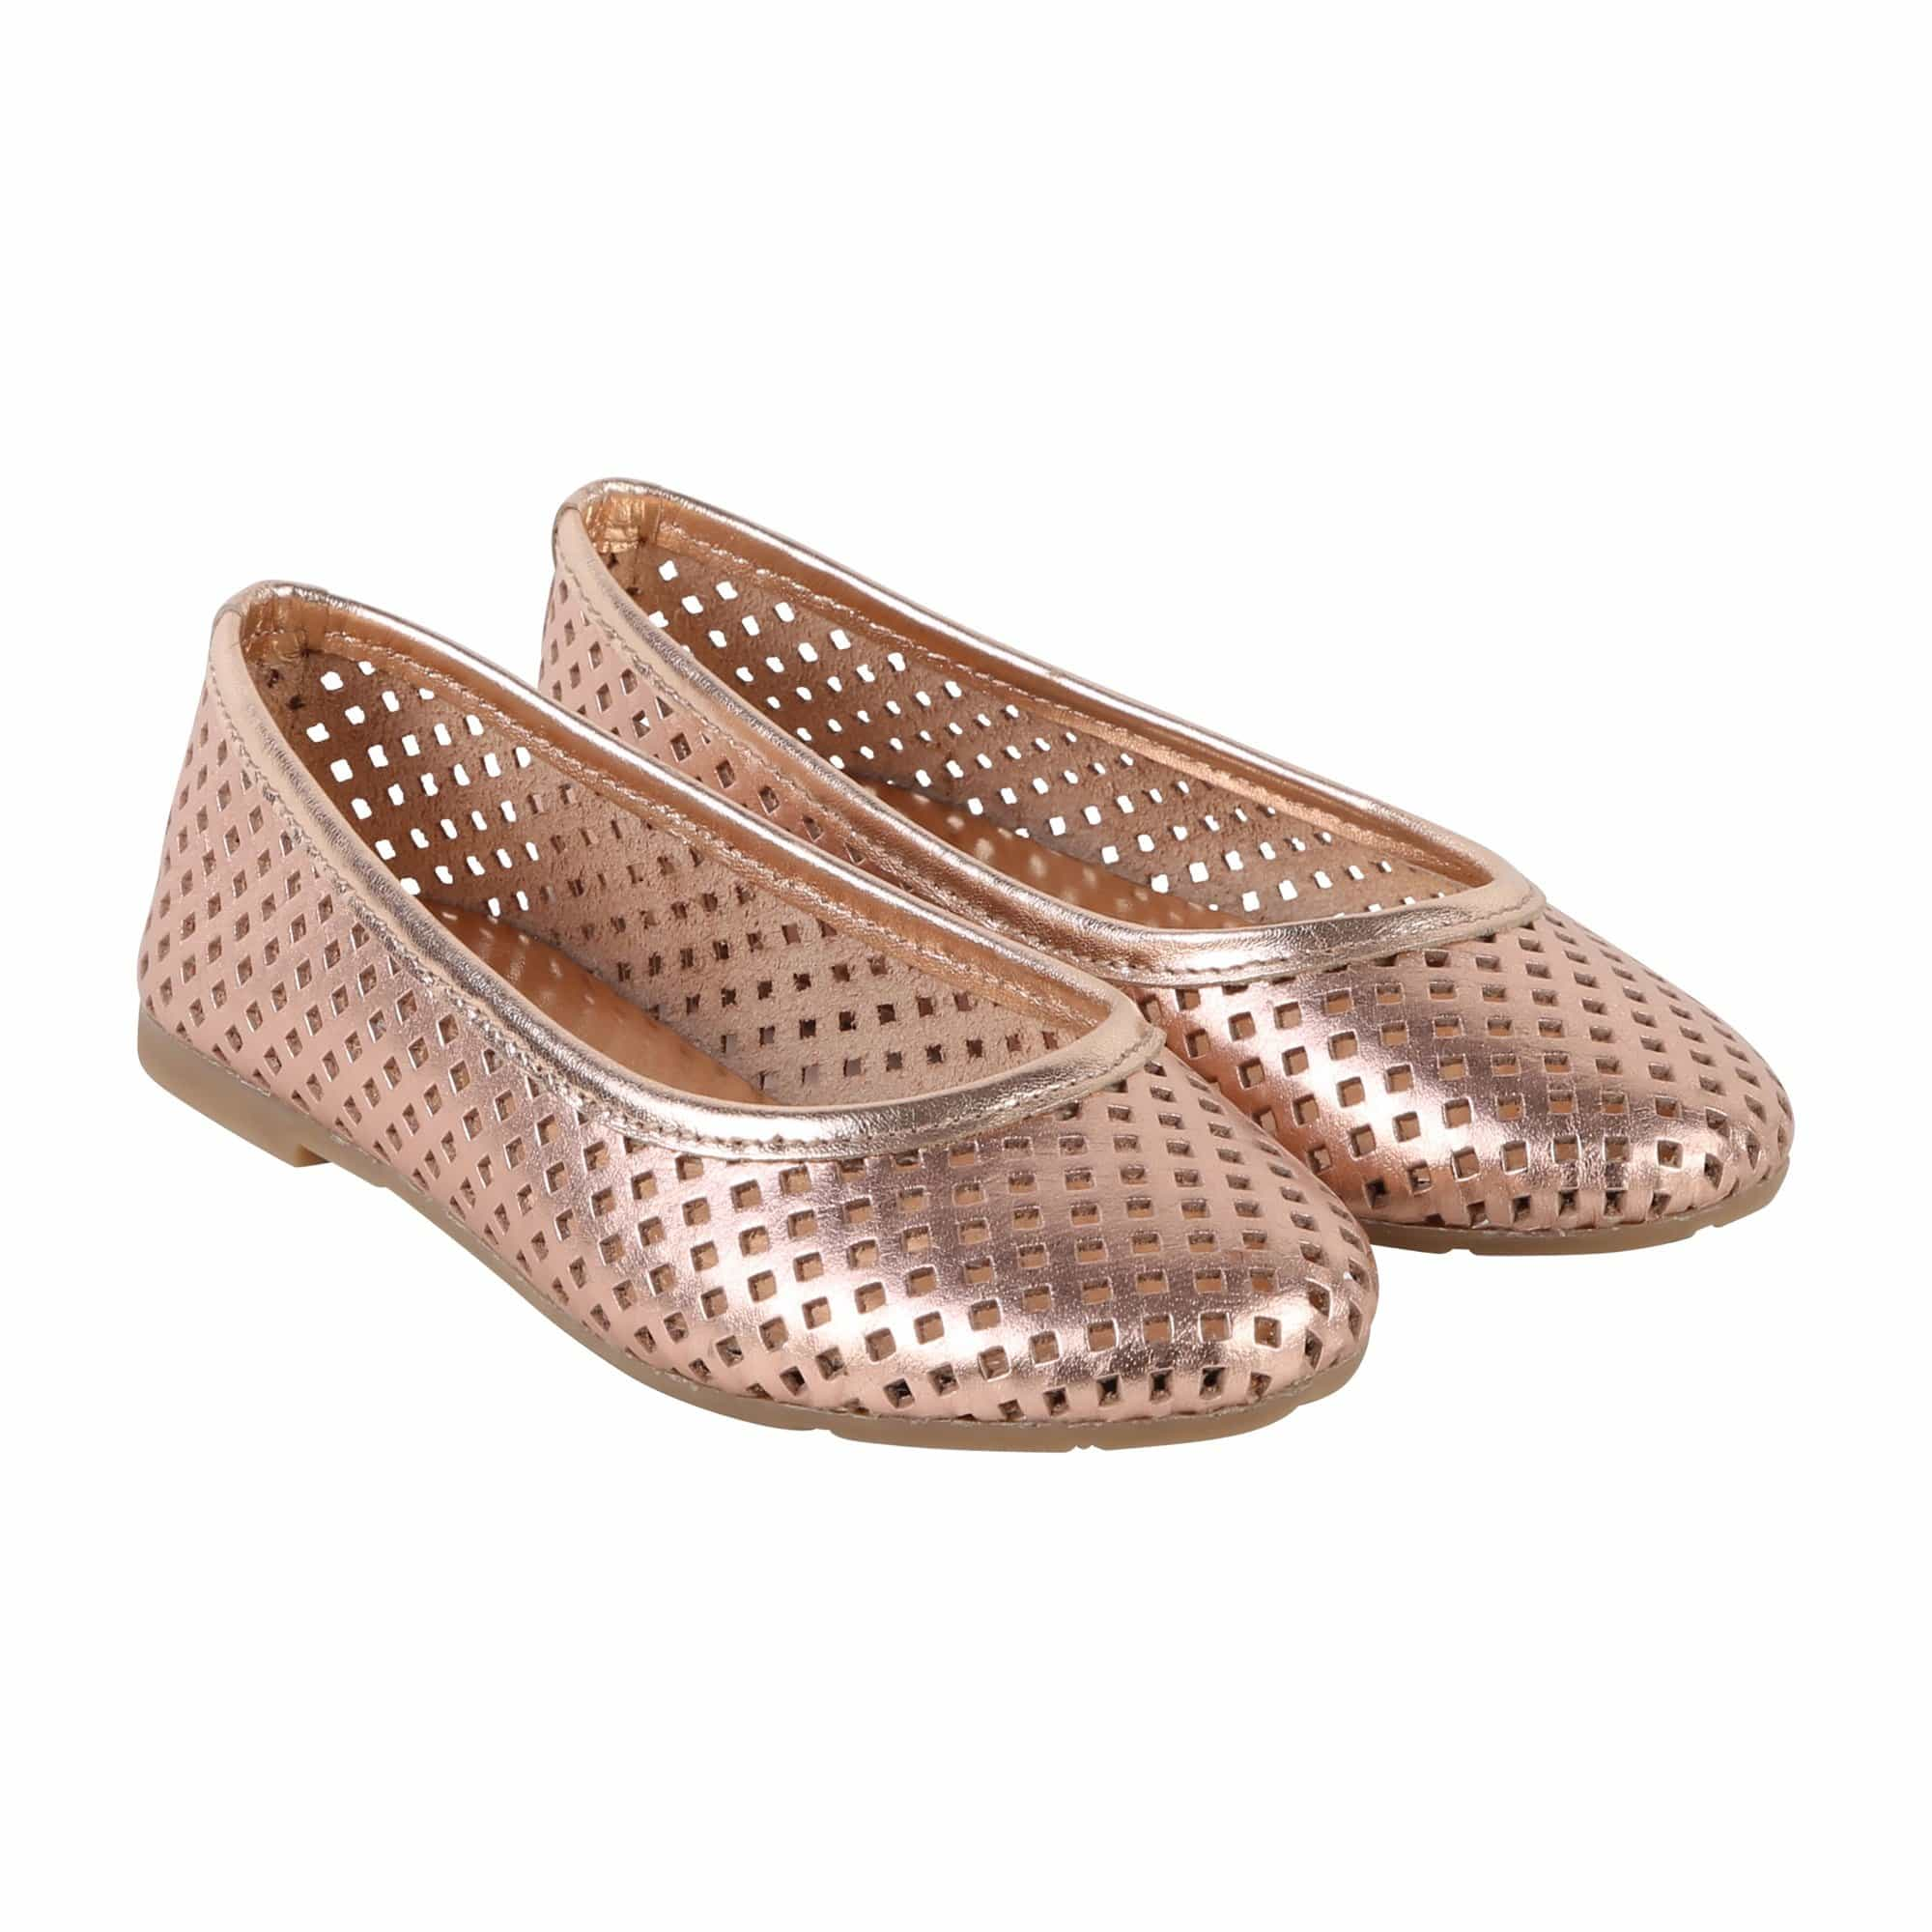 Carrement Beau Ballerina Flats Copper Y19030/Z95